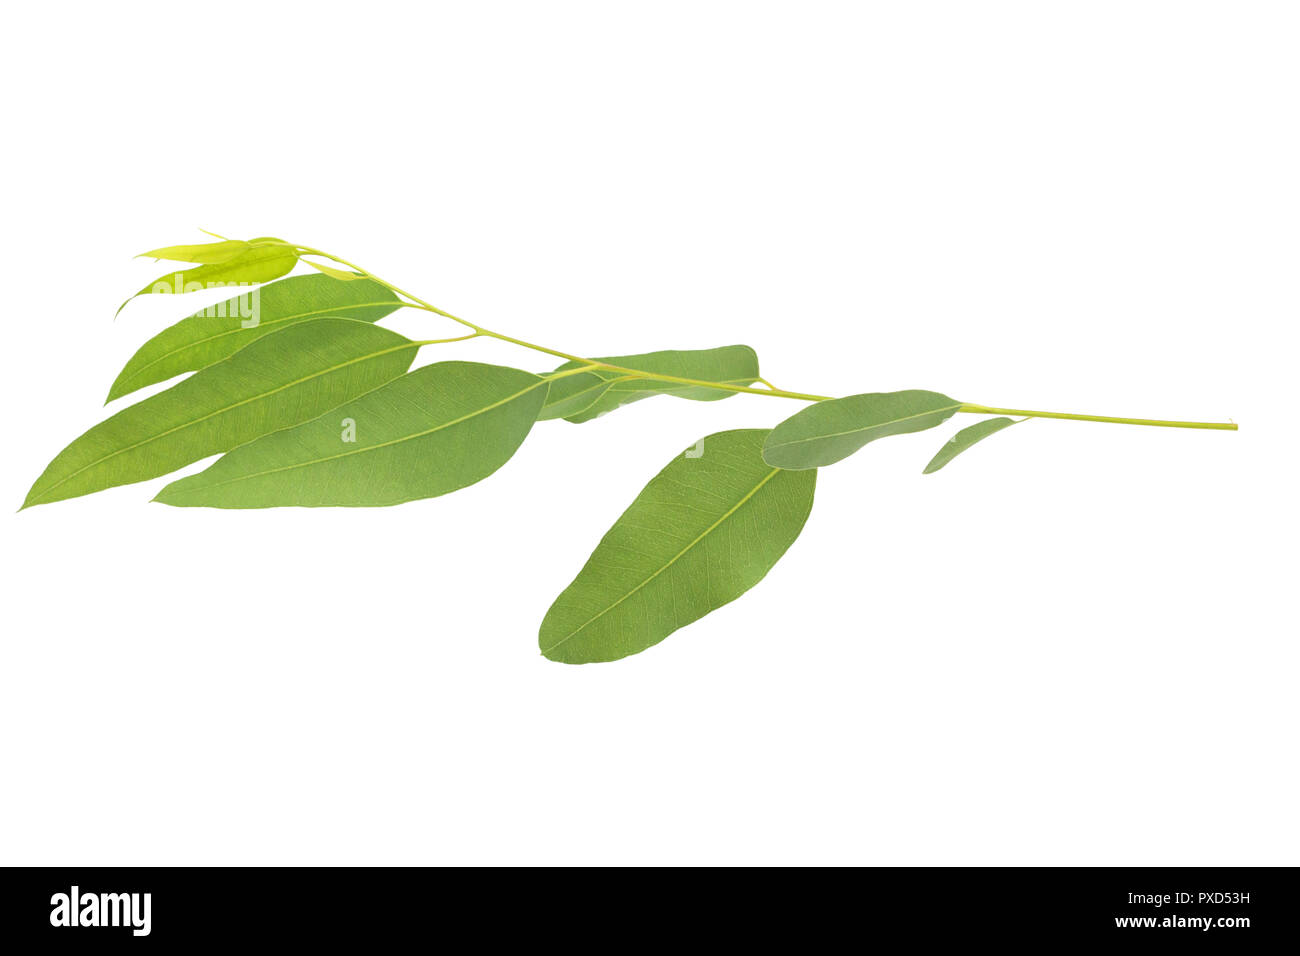 eucalyptus isolated on gray background with clipping path - Stock Image